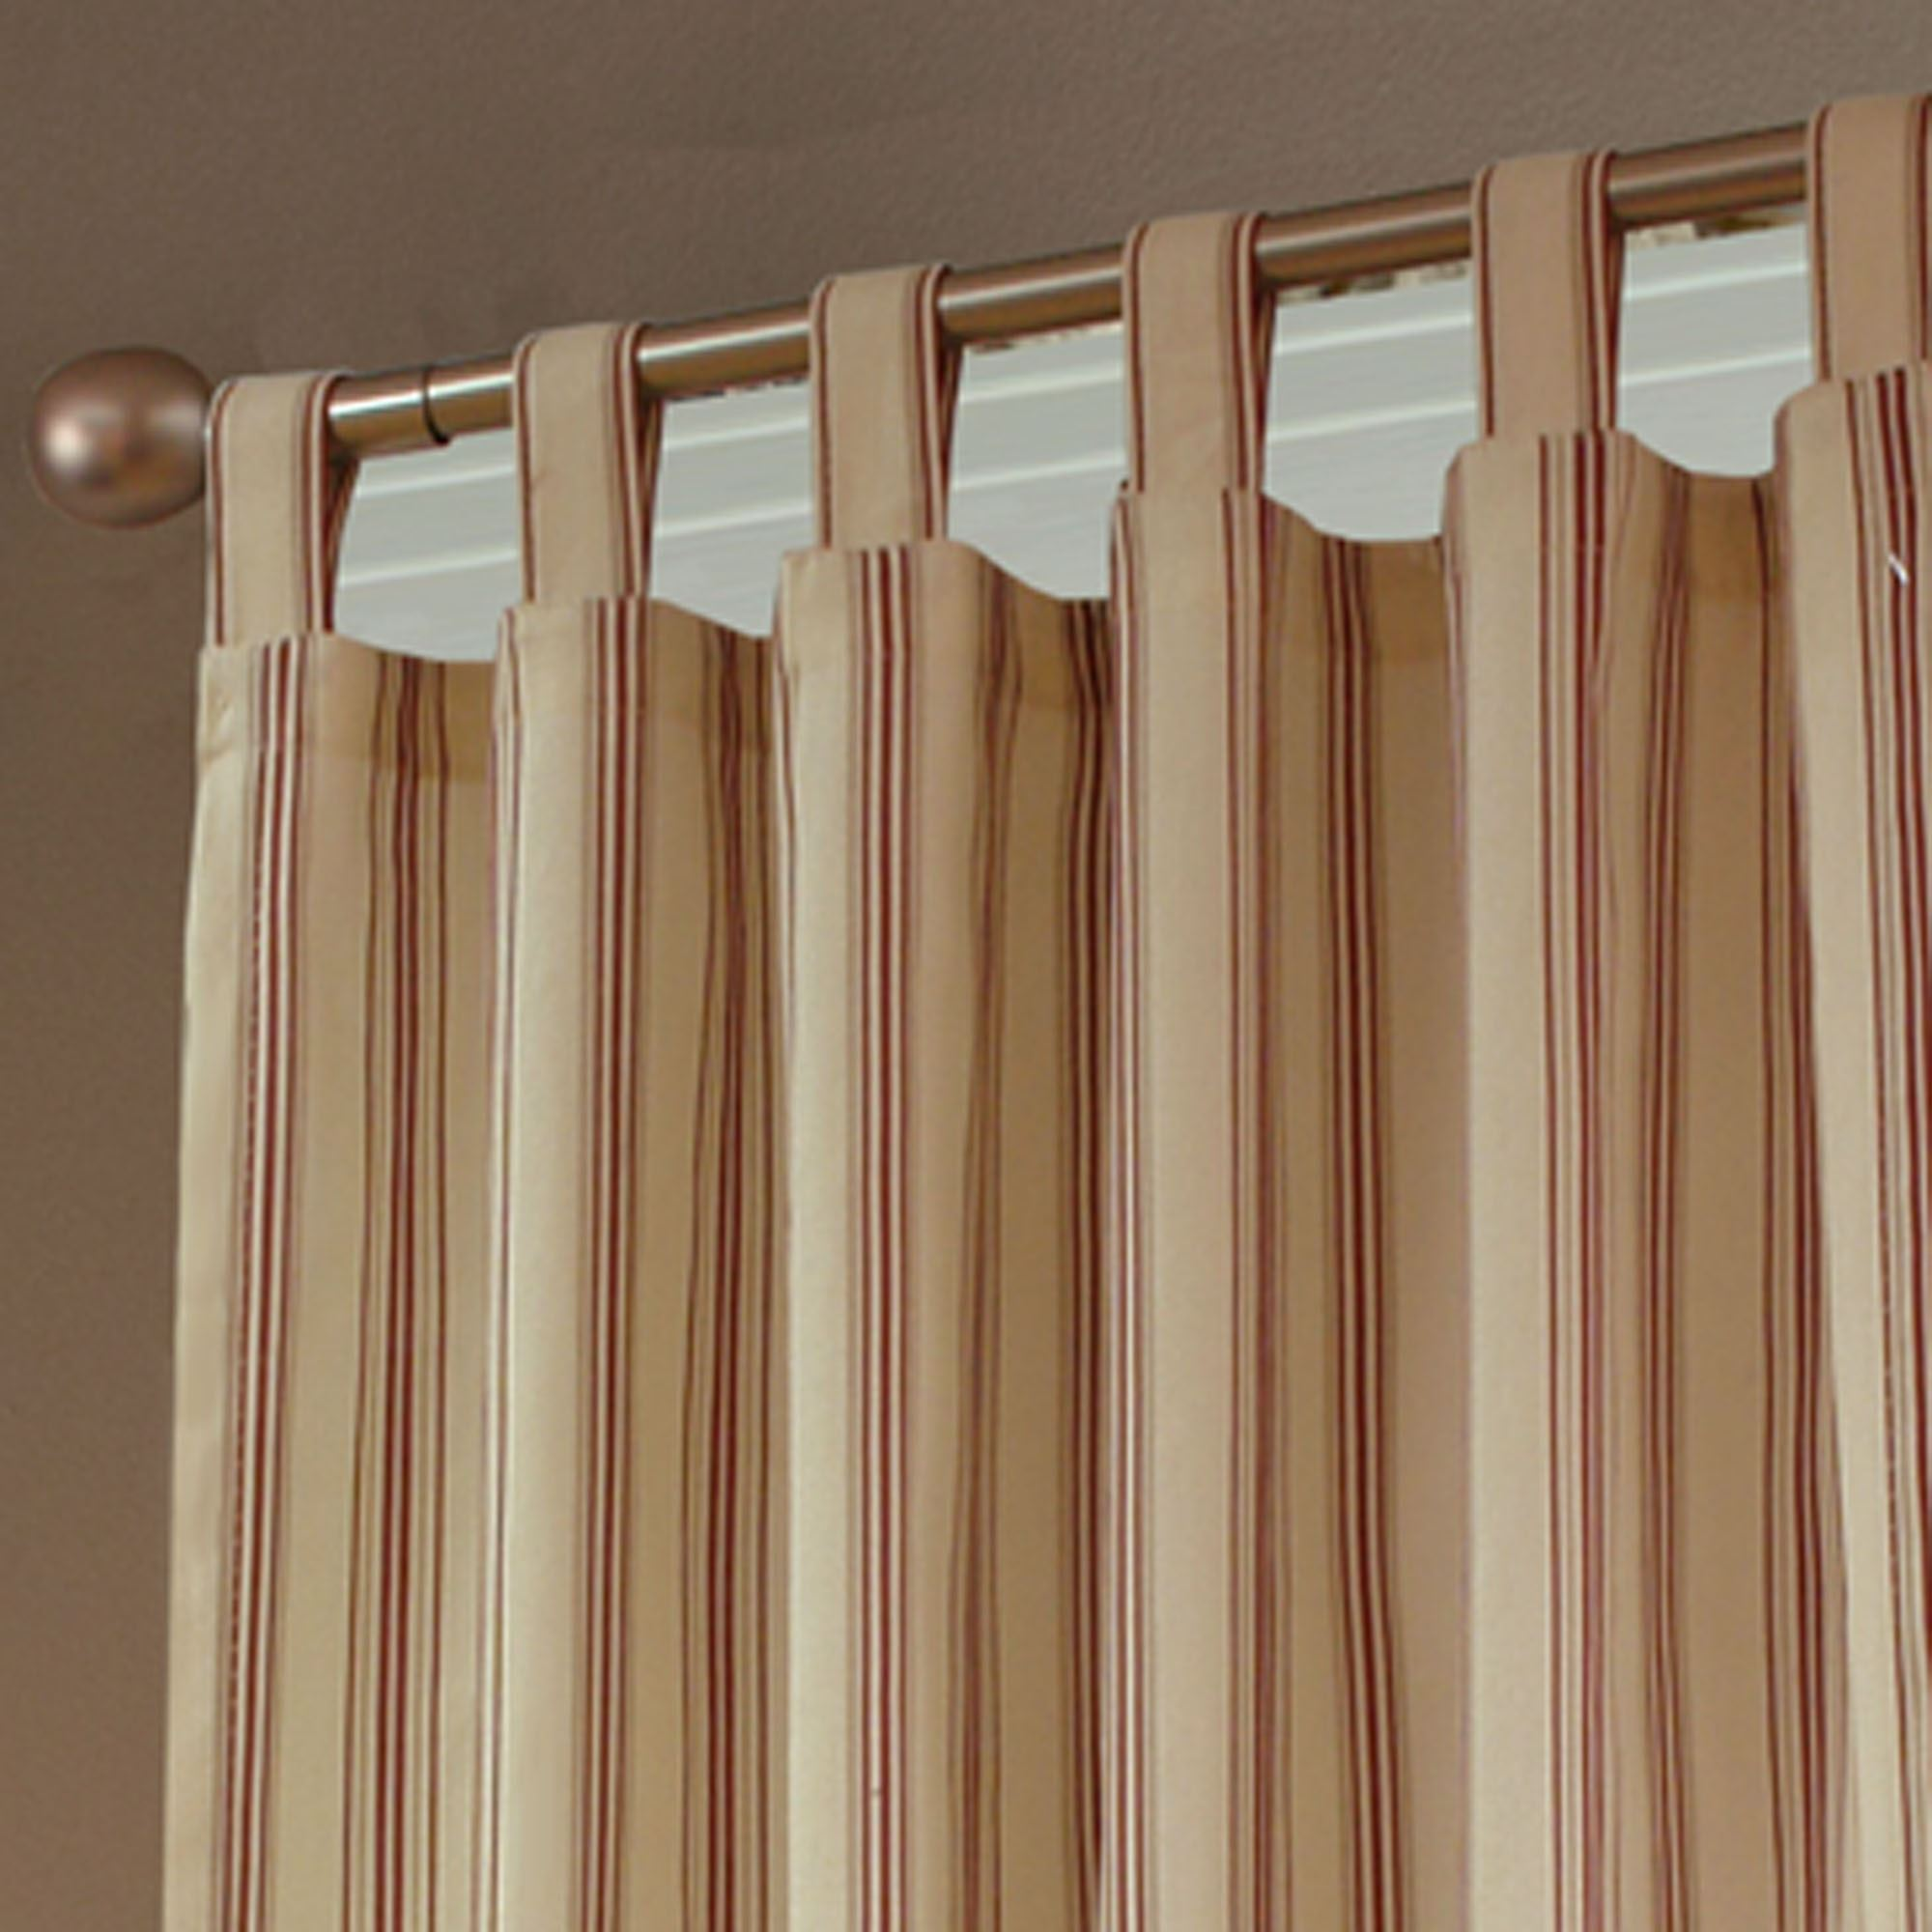 Tab-Top-Curtain.jpg